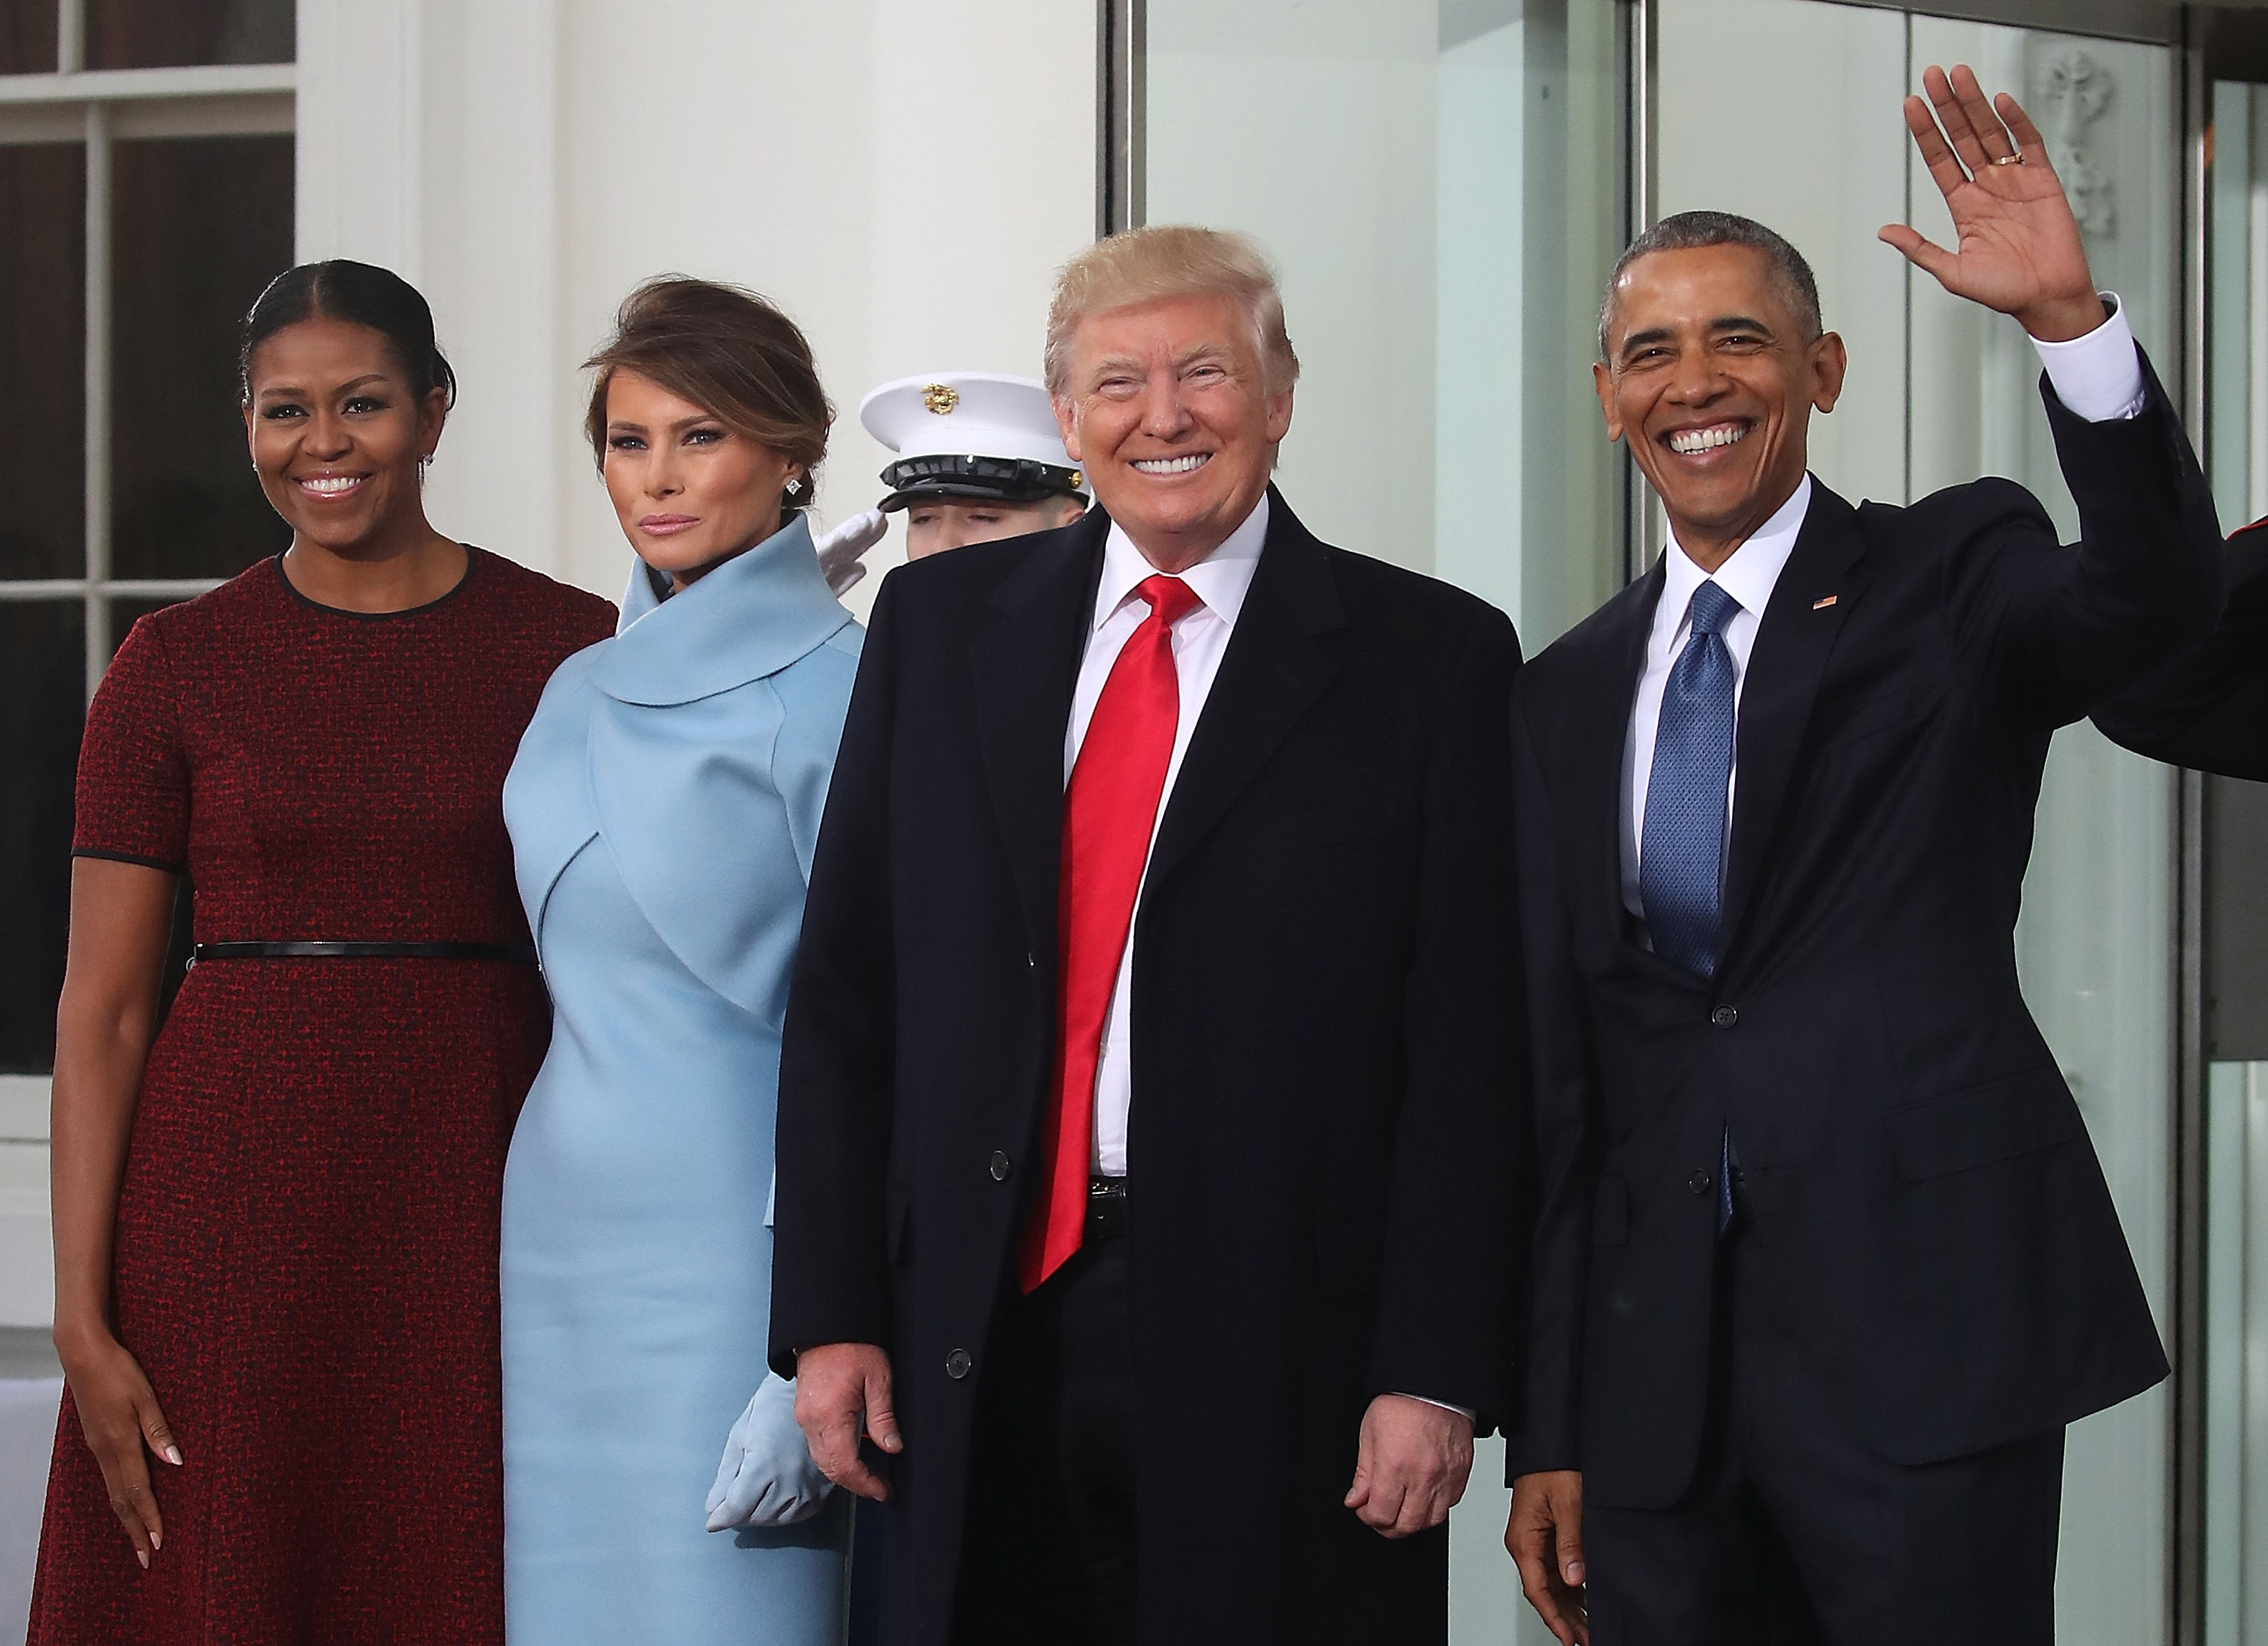 President-elect Donald Trump (2ndR) and his wife Melania Trump (2ndL), are greeted by President Barack Obama and his wife first lady Michelle Obama, upon arriving at the White House on January 20, 2017 in Washington, DC. Later in the morning President-elect Trump will be sworn in as the nation's 45th president during an inaugural ceremony at the U.S. Capitol. (Getty Images)